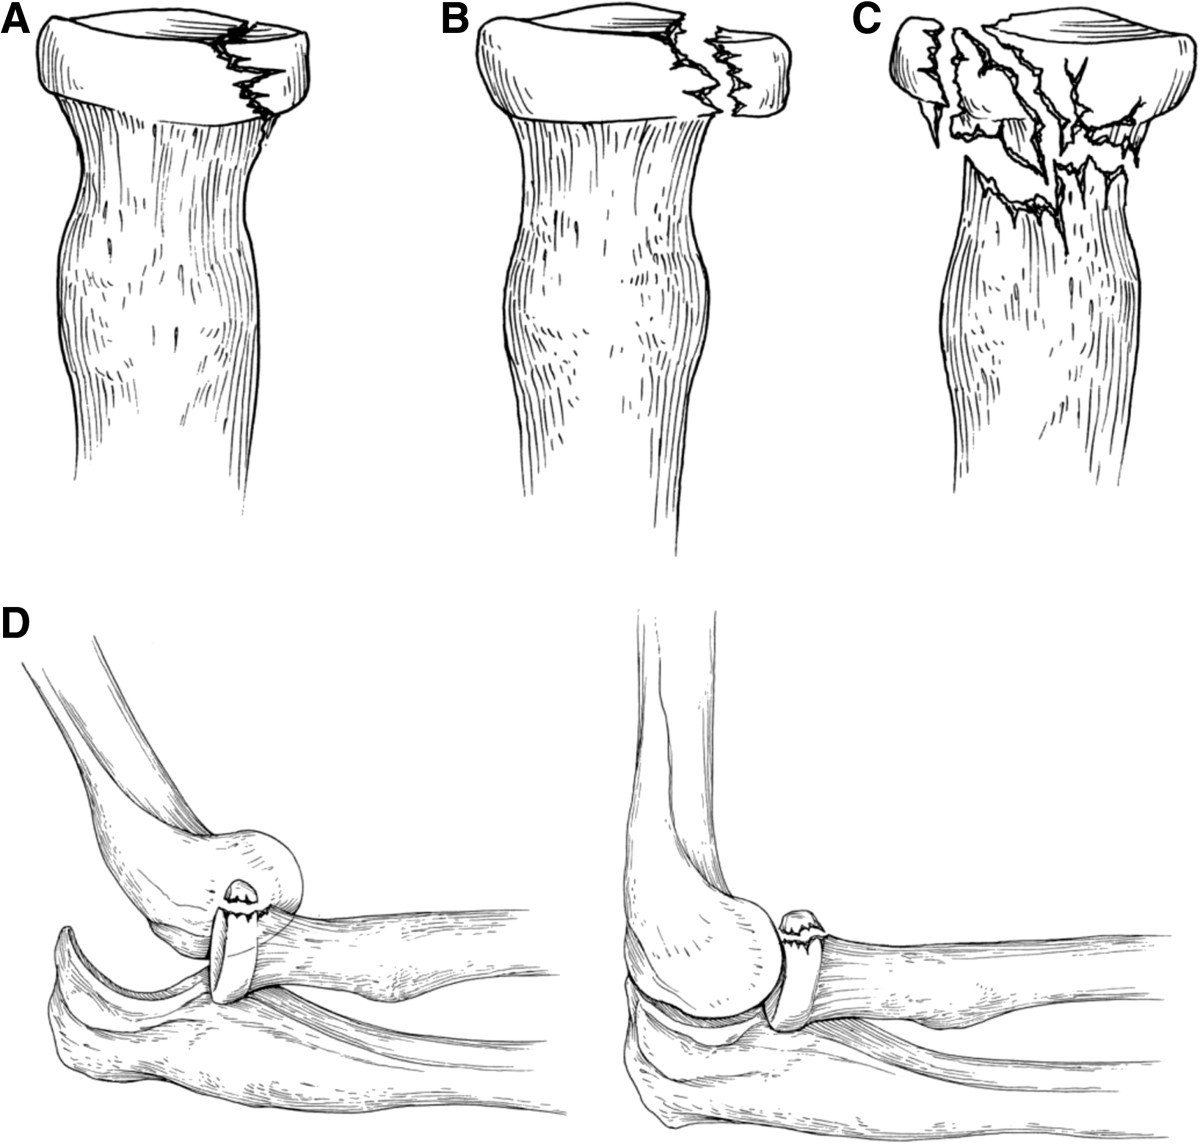 distal radius fractures drf pain management Distal radius fractures can be reset either with surgery (open reduction) or without it (closed reduction) during recovery, these pain management techniques can be used for patients: physicians may prescribe a short course of opioid pain medications after a reduction.